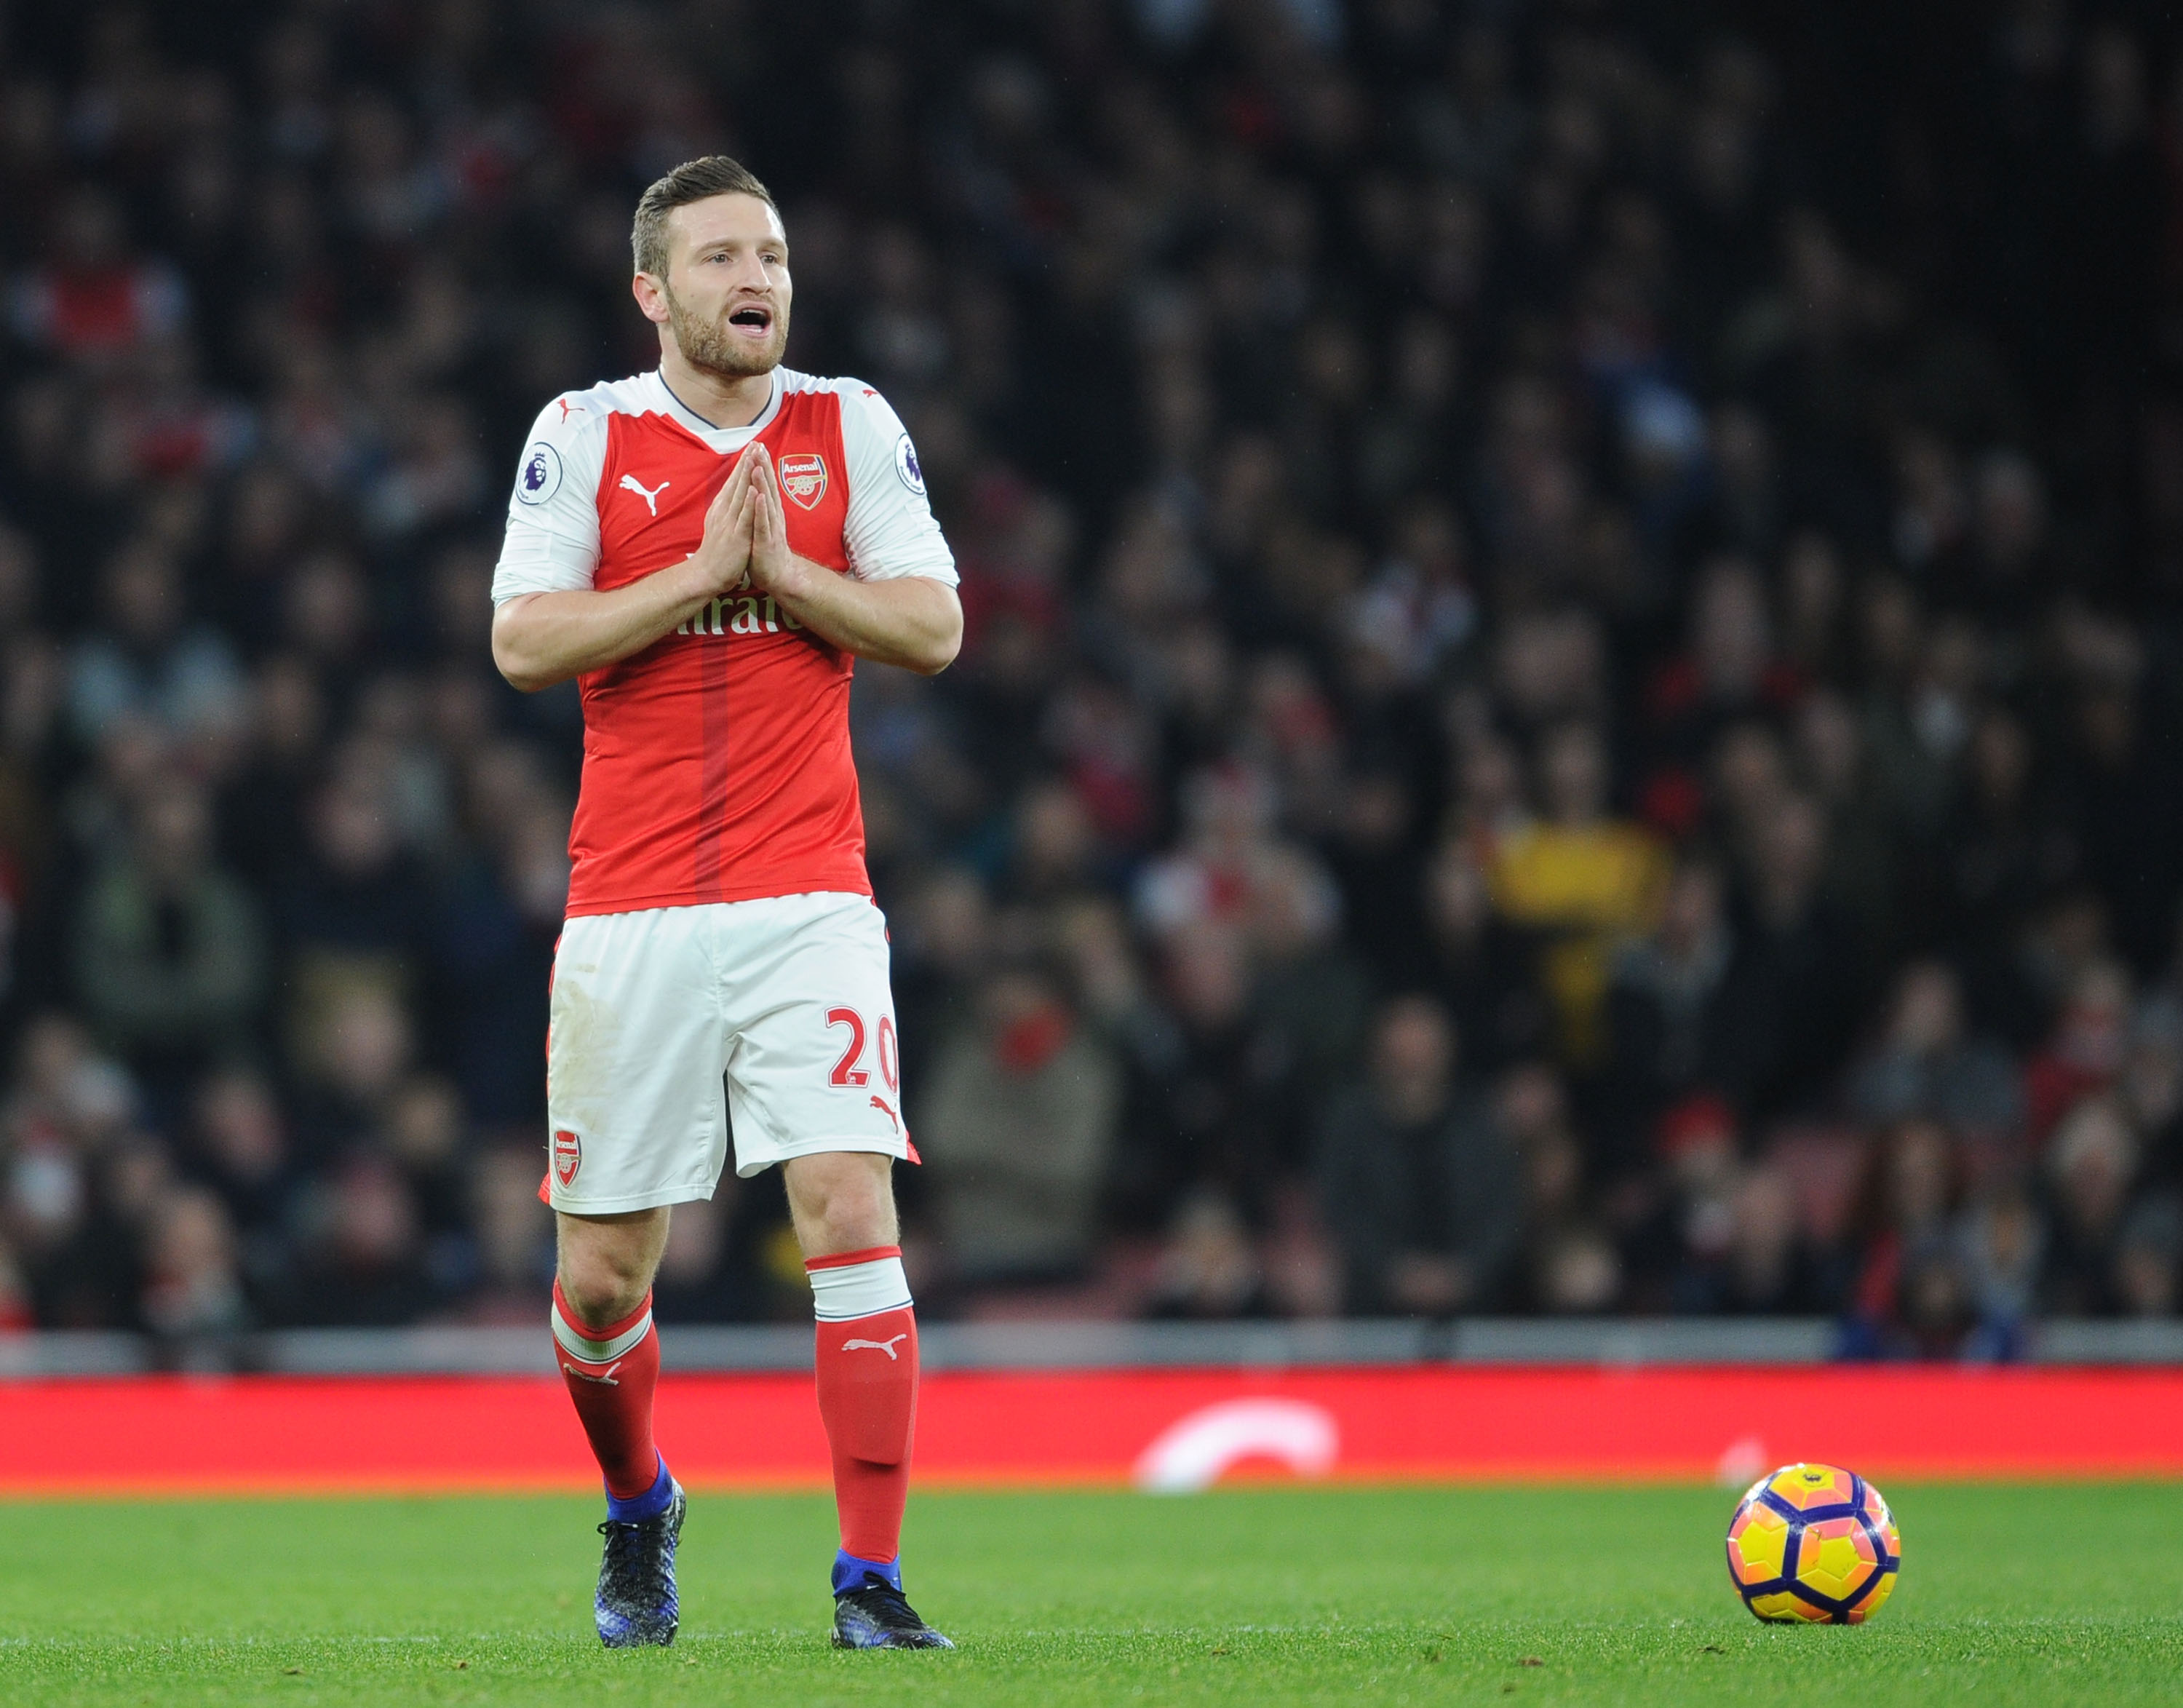 Arsene Wenger provides injury updates on Shkodran Mustafi, Danny Welbeck, Theo Walcott, Kieran Gibbs and Alex Oxlade-Chamberlain